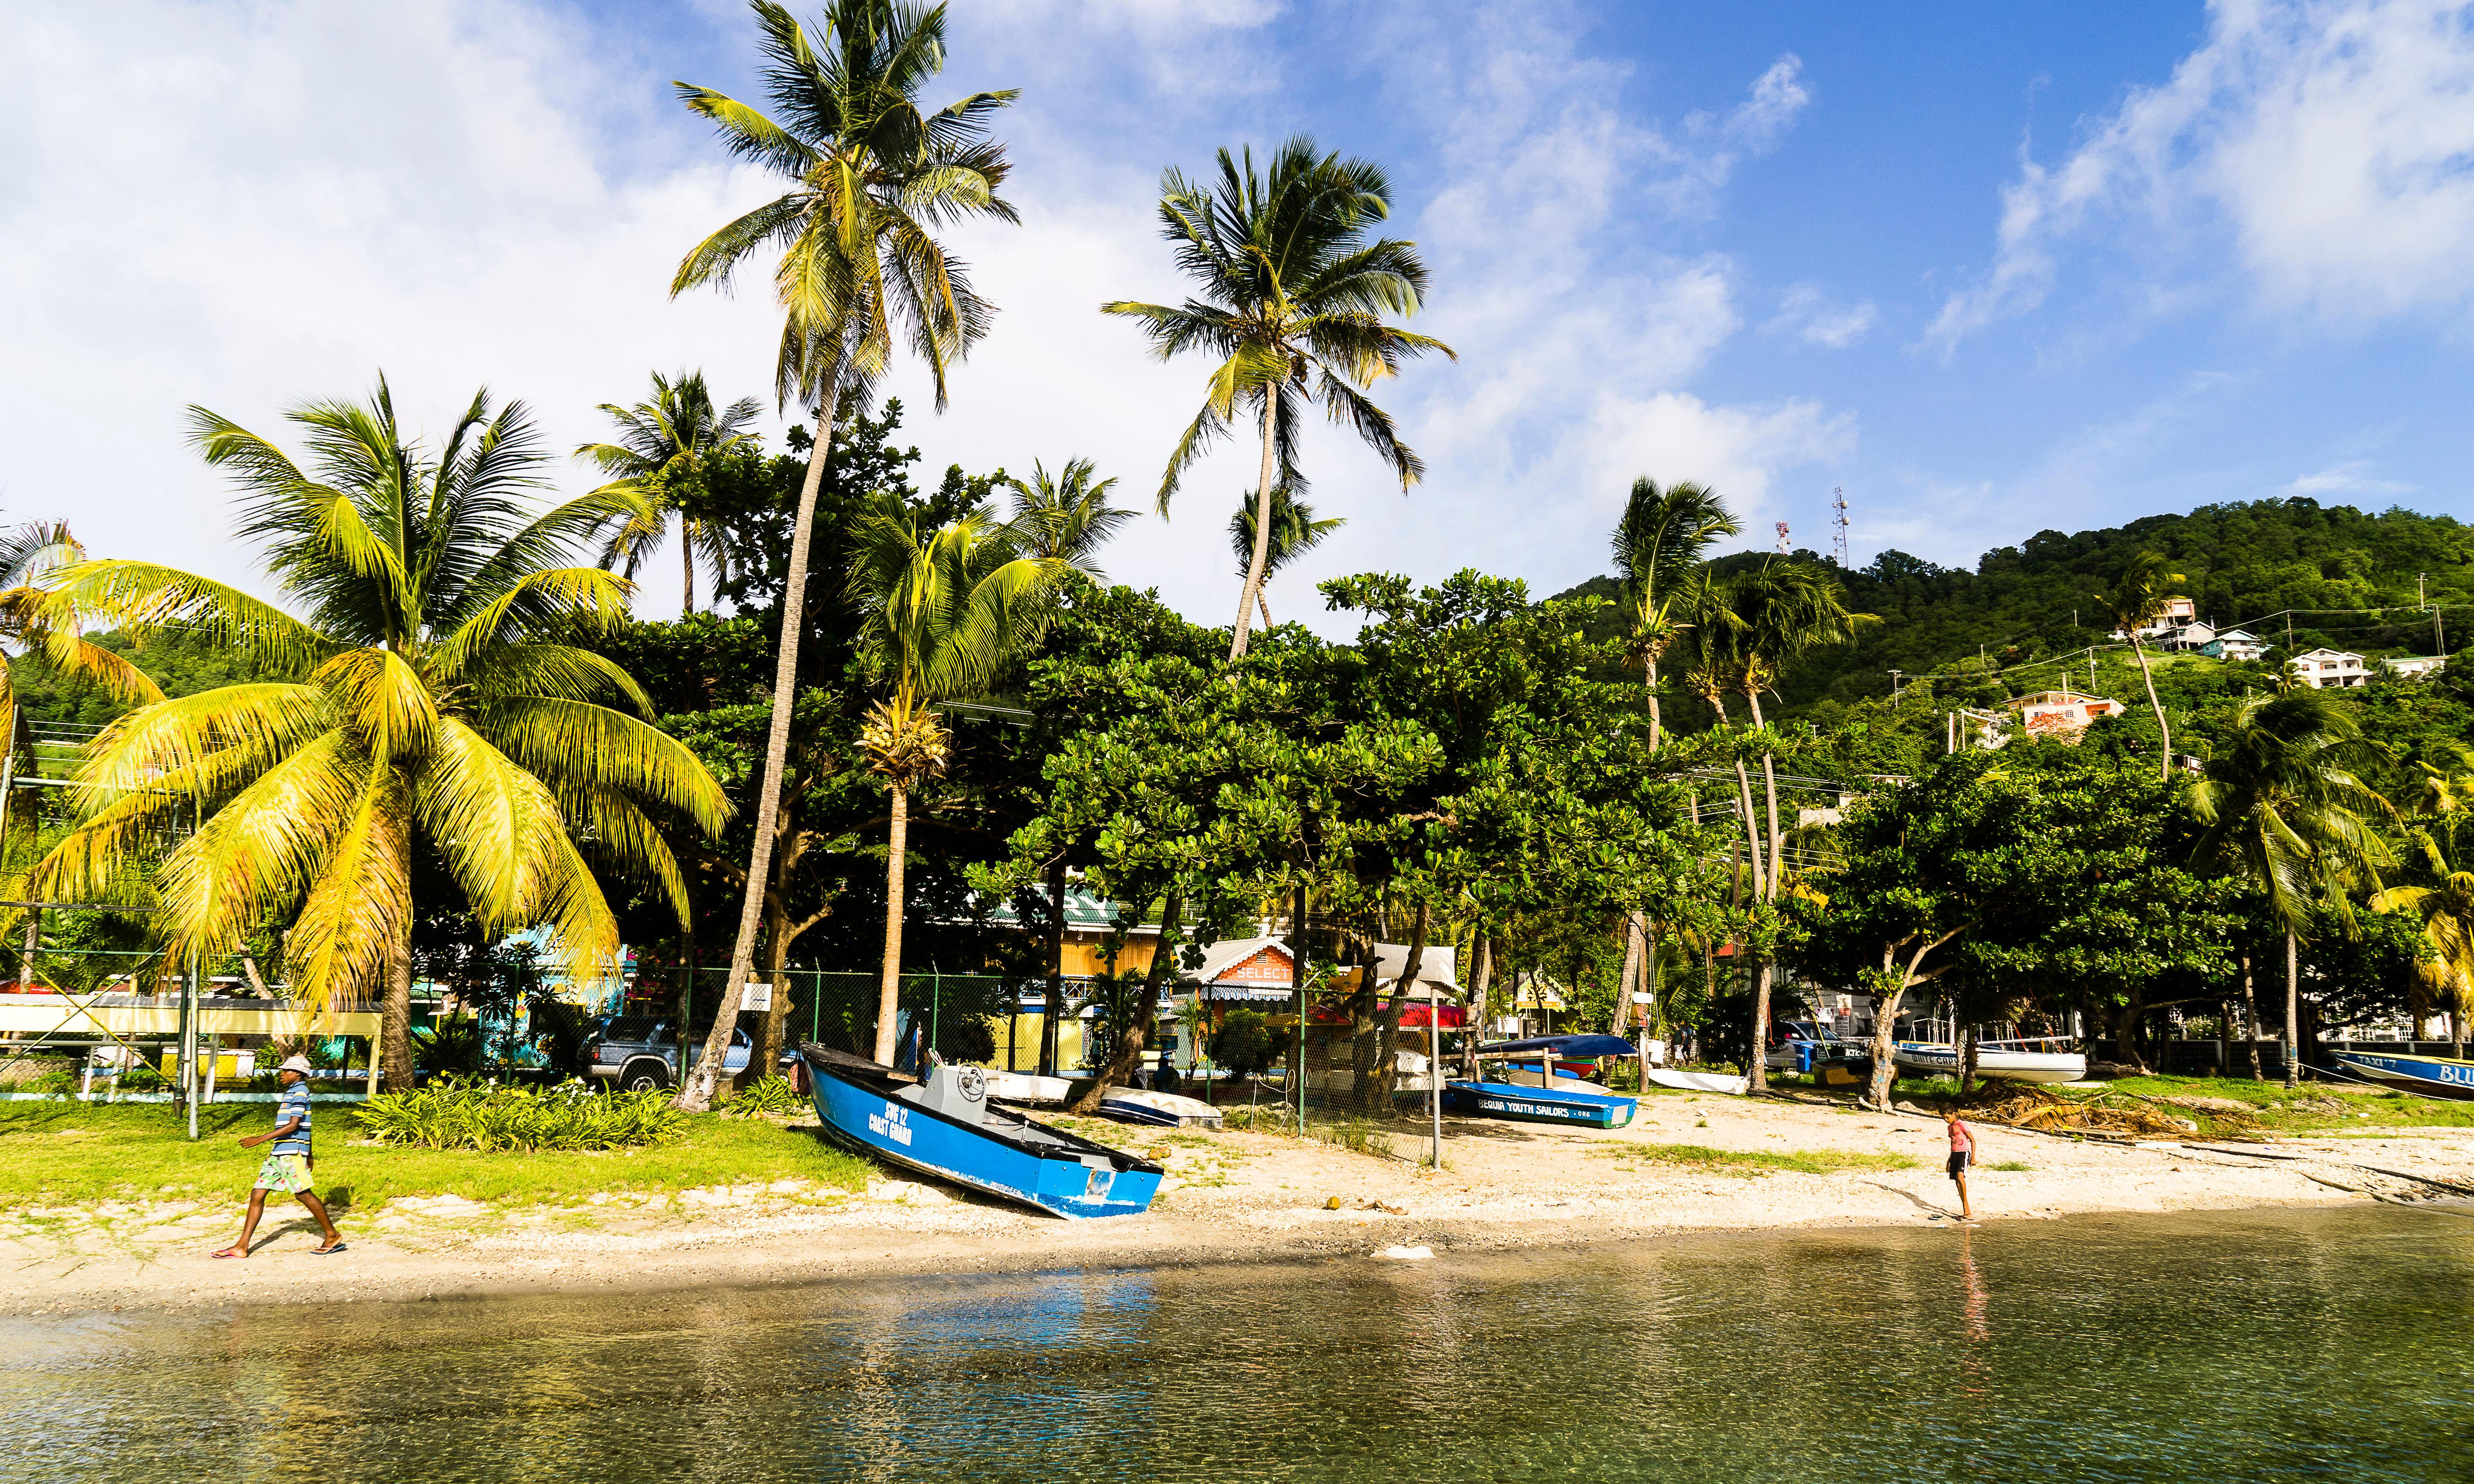 Caribbean dream: mixing it up in the Grenadines